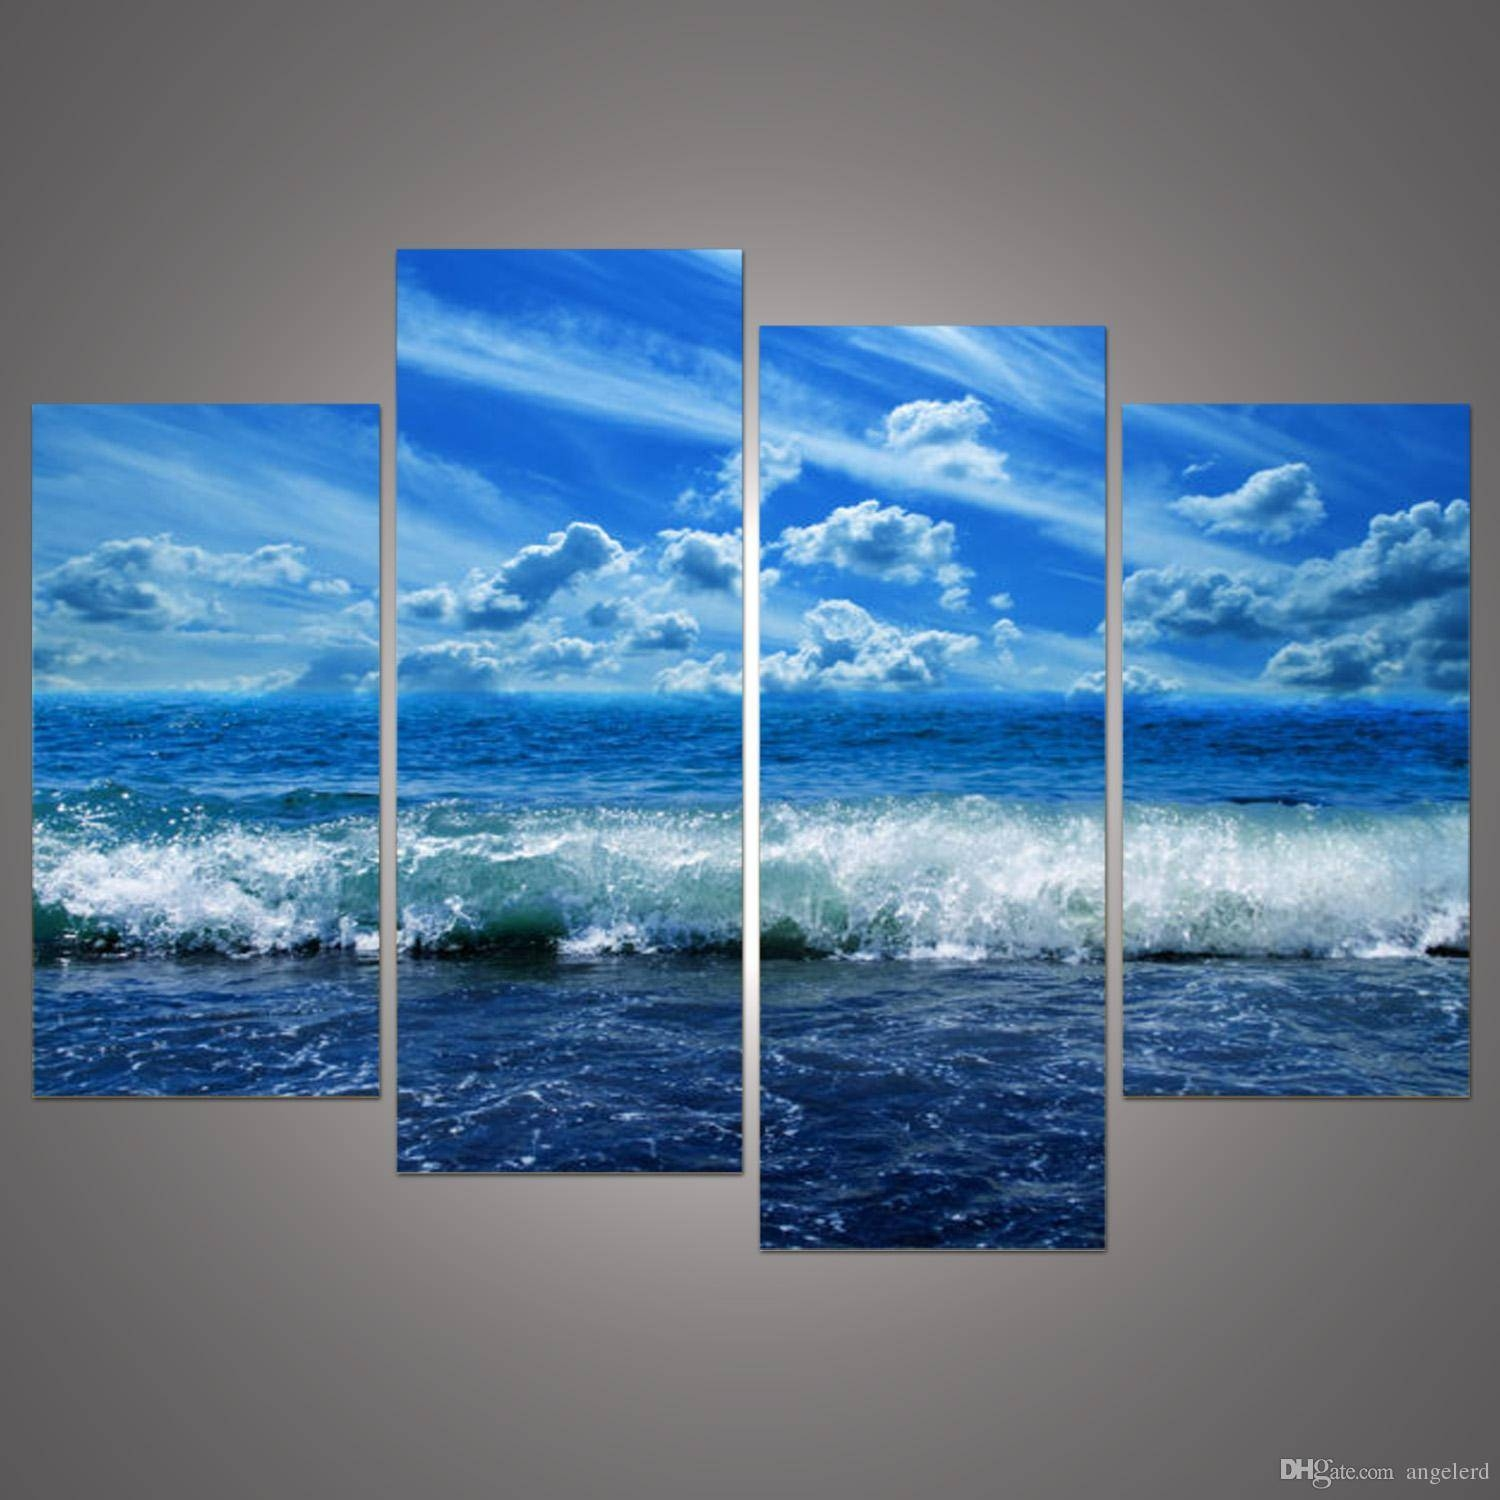 Online Cheap Paintings Modular Paintings Sky Clouds Wall Art Pertaining To Most Current Multi Panel Canvas Wall Art (View 8 of 20)